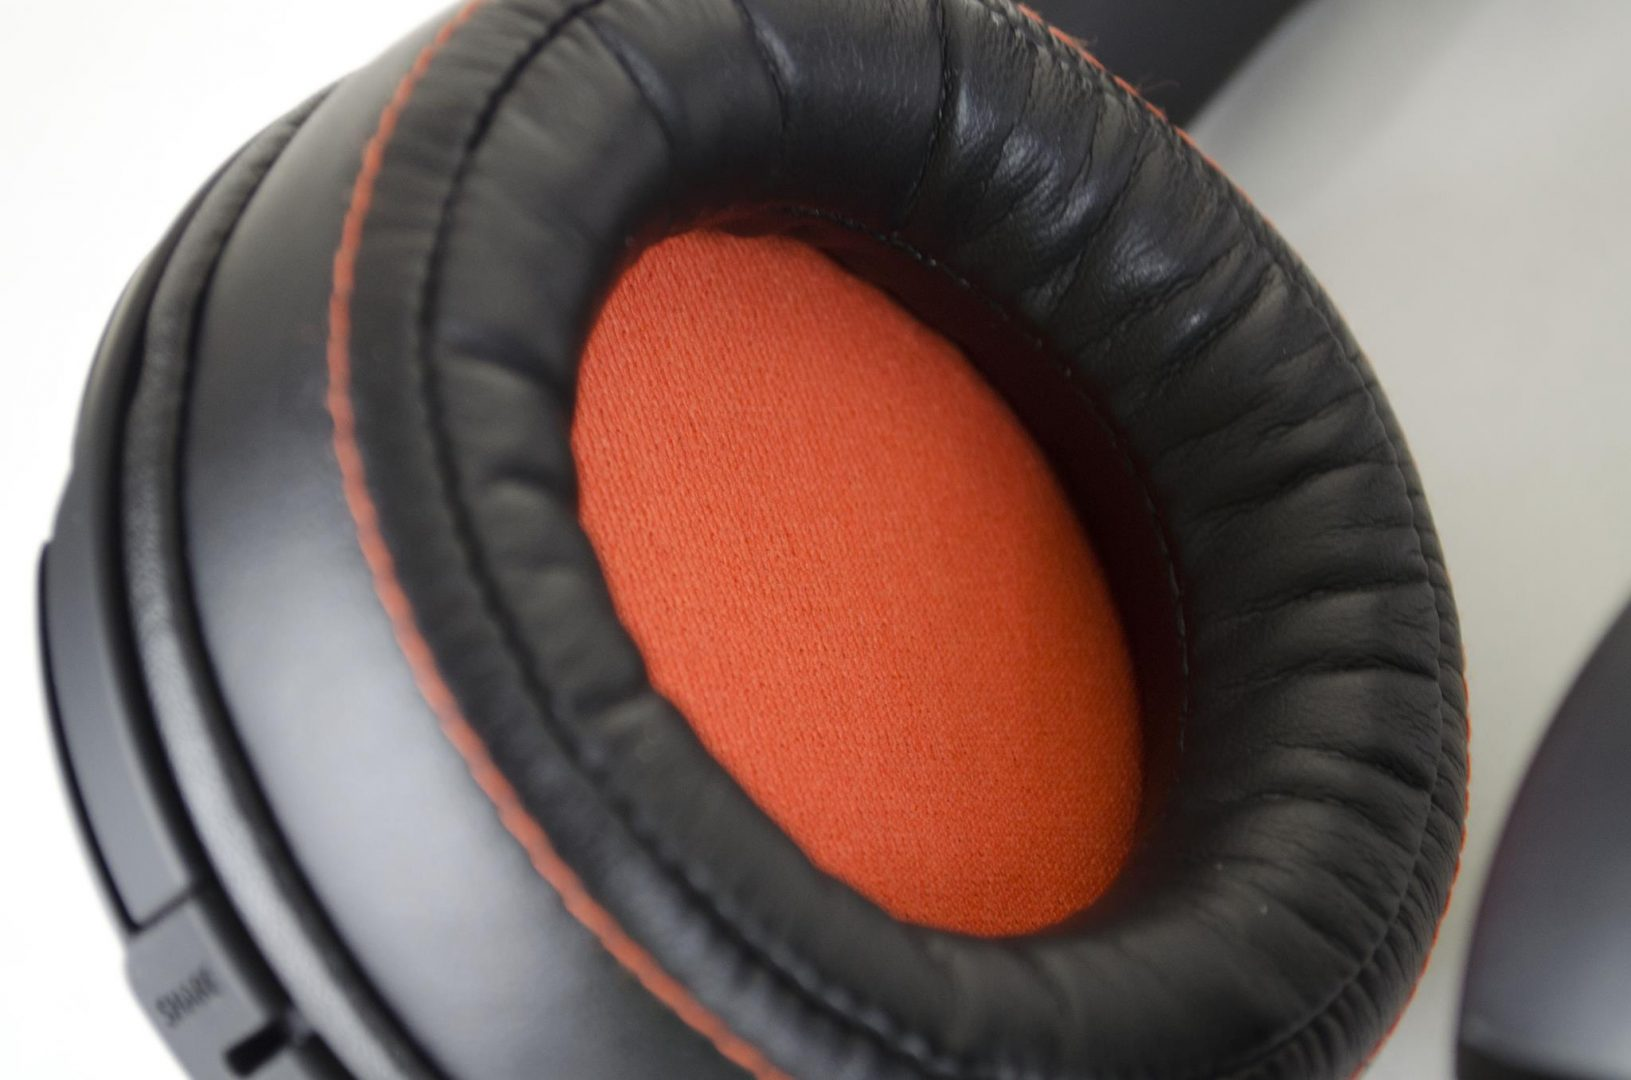 steelseries siber 800 wireless gaming headset review_16